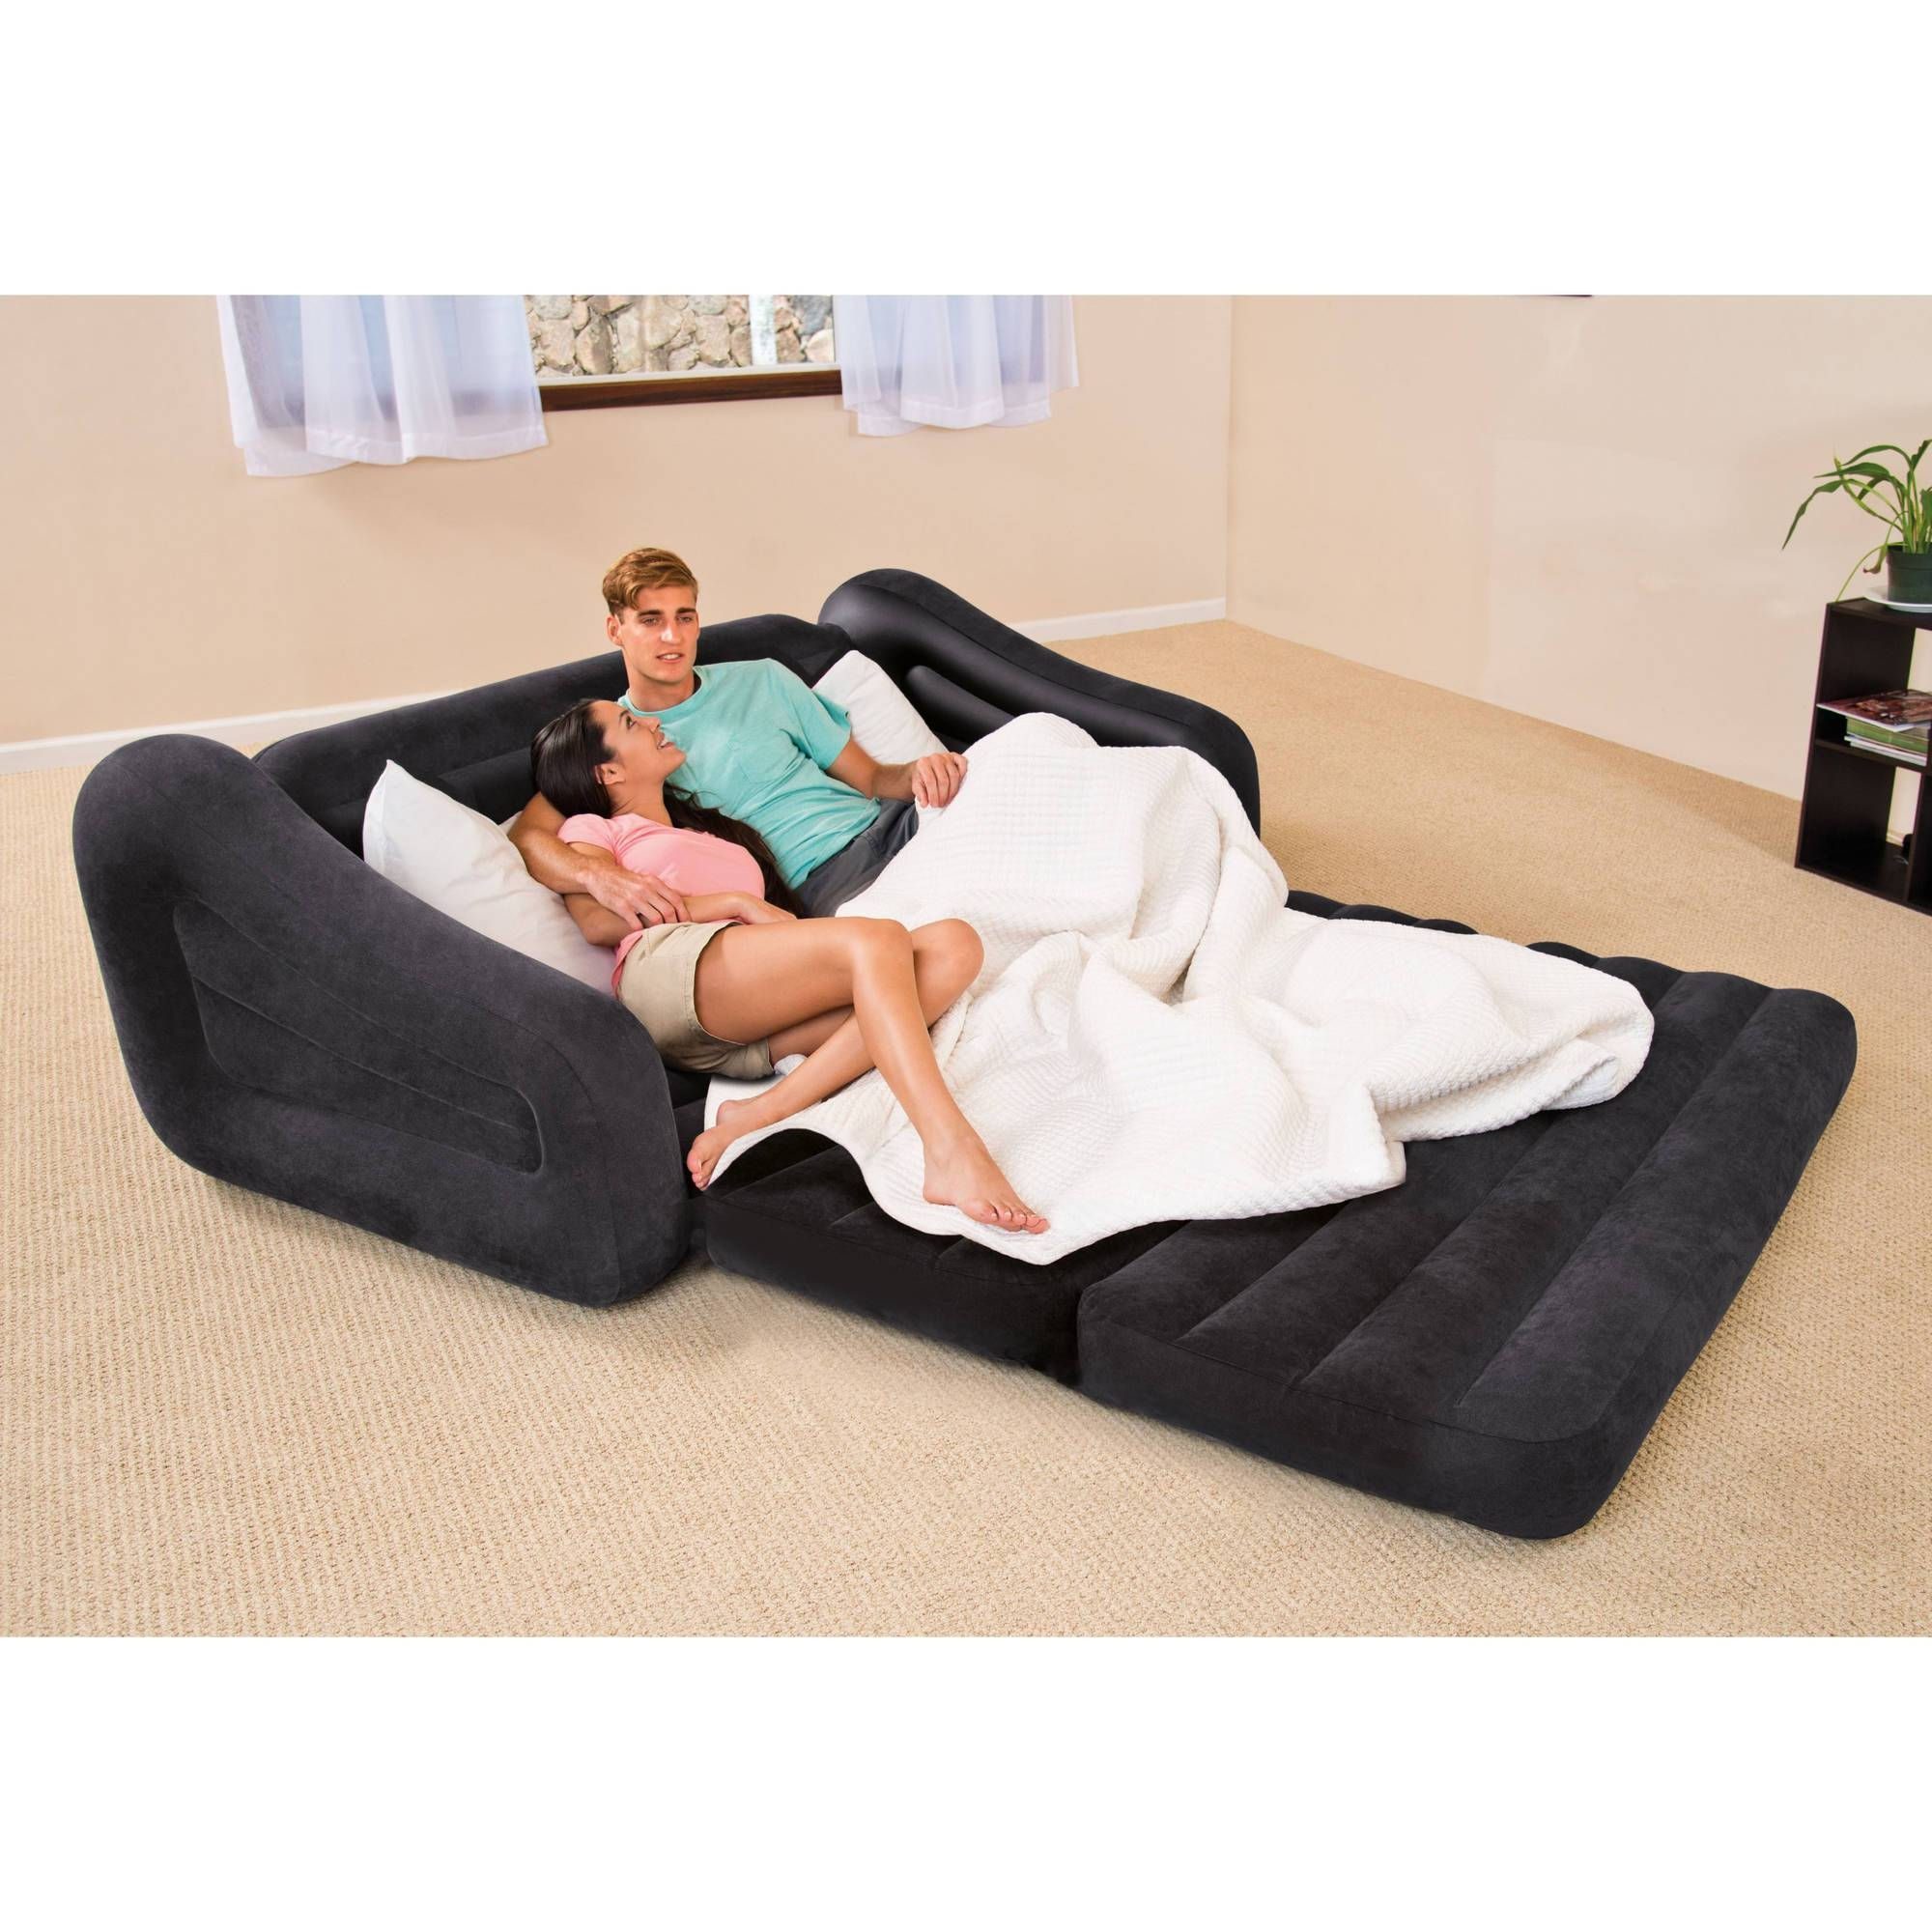 Intex Queen Inflatable Pull Out Sofa Bed – Walmart With Regard To Sofas Mattress (View 3 of 15)